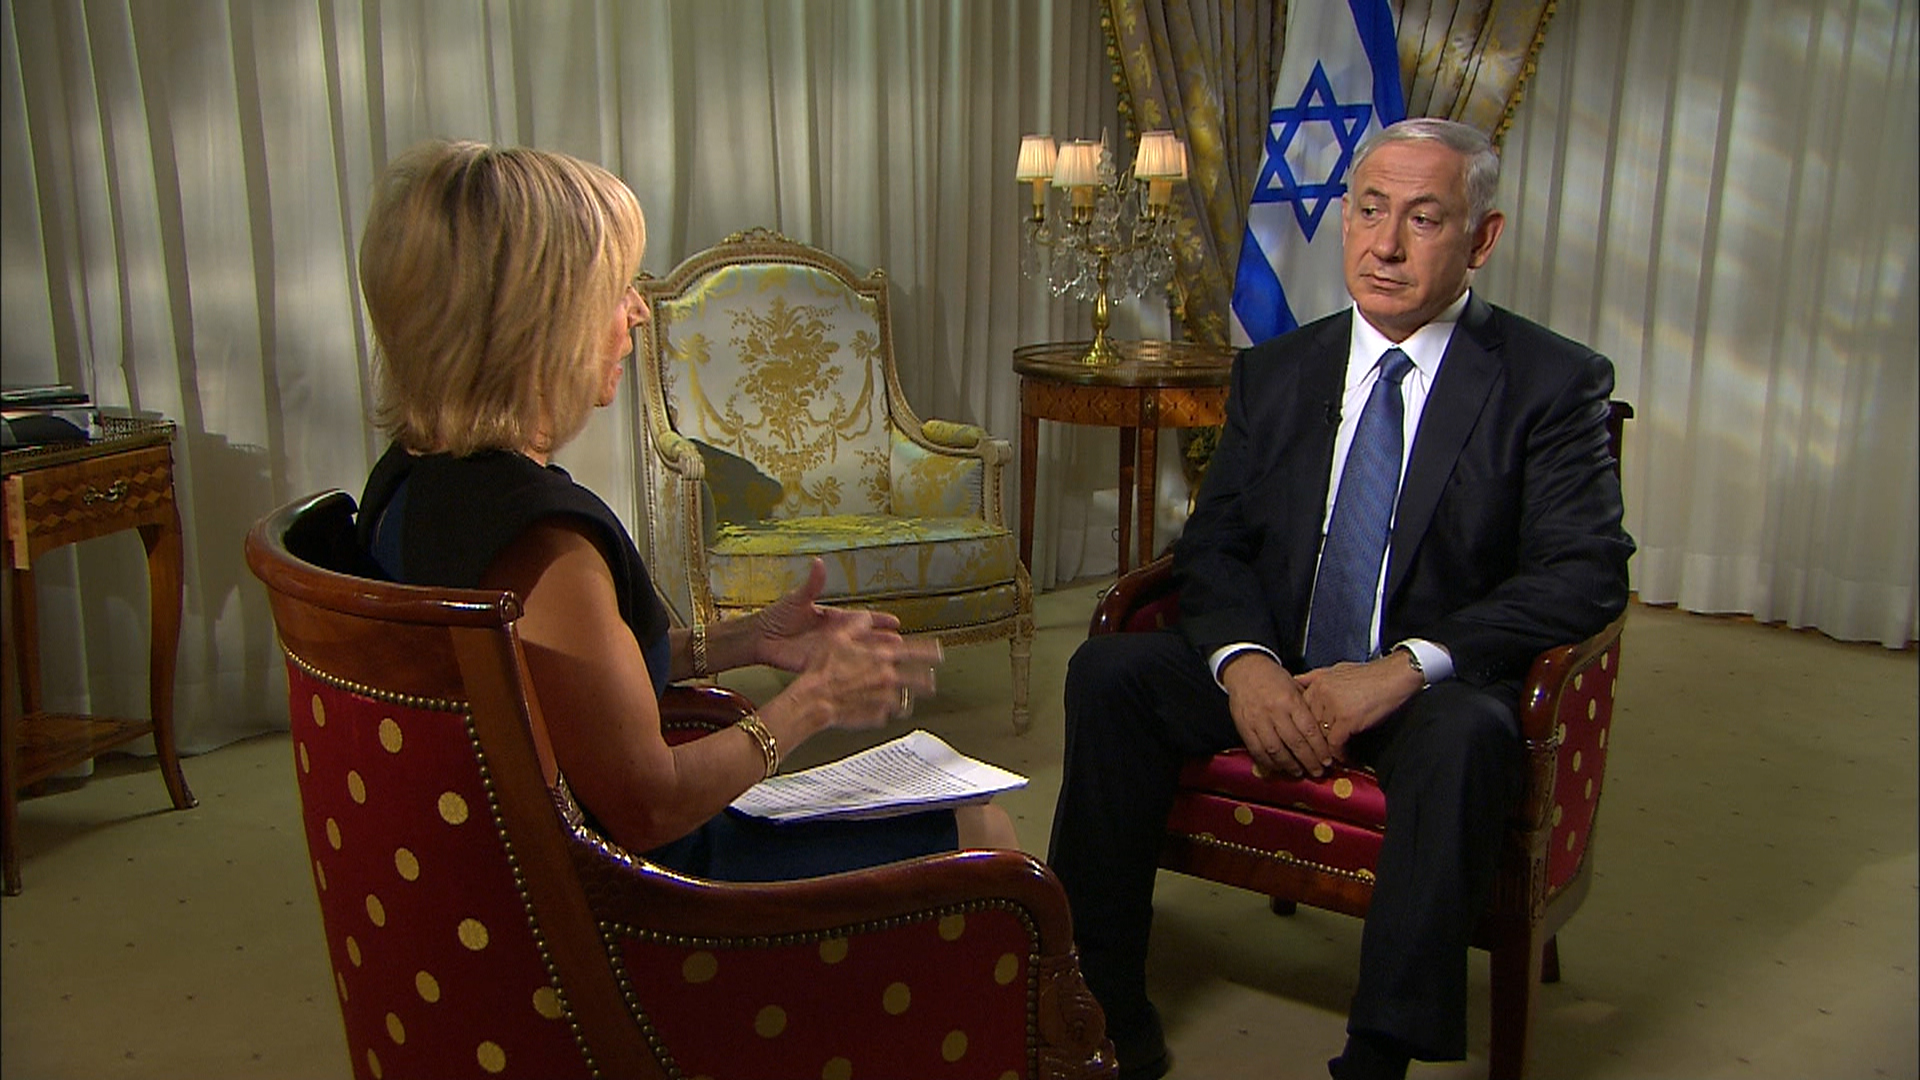 Netanyahu: 'Get the facts right'